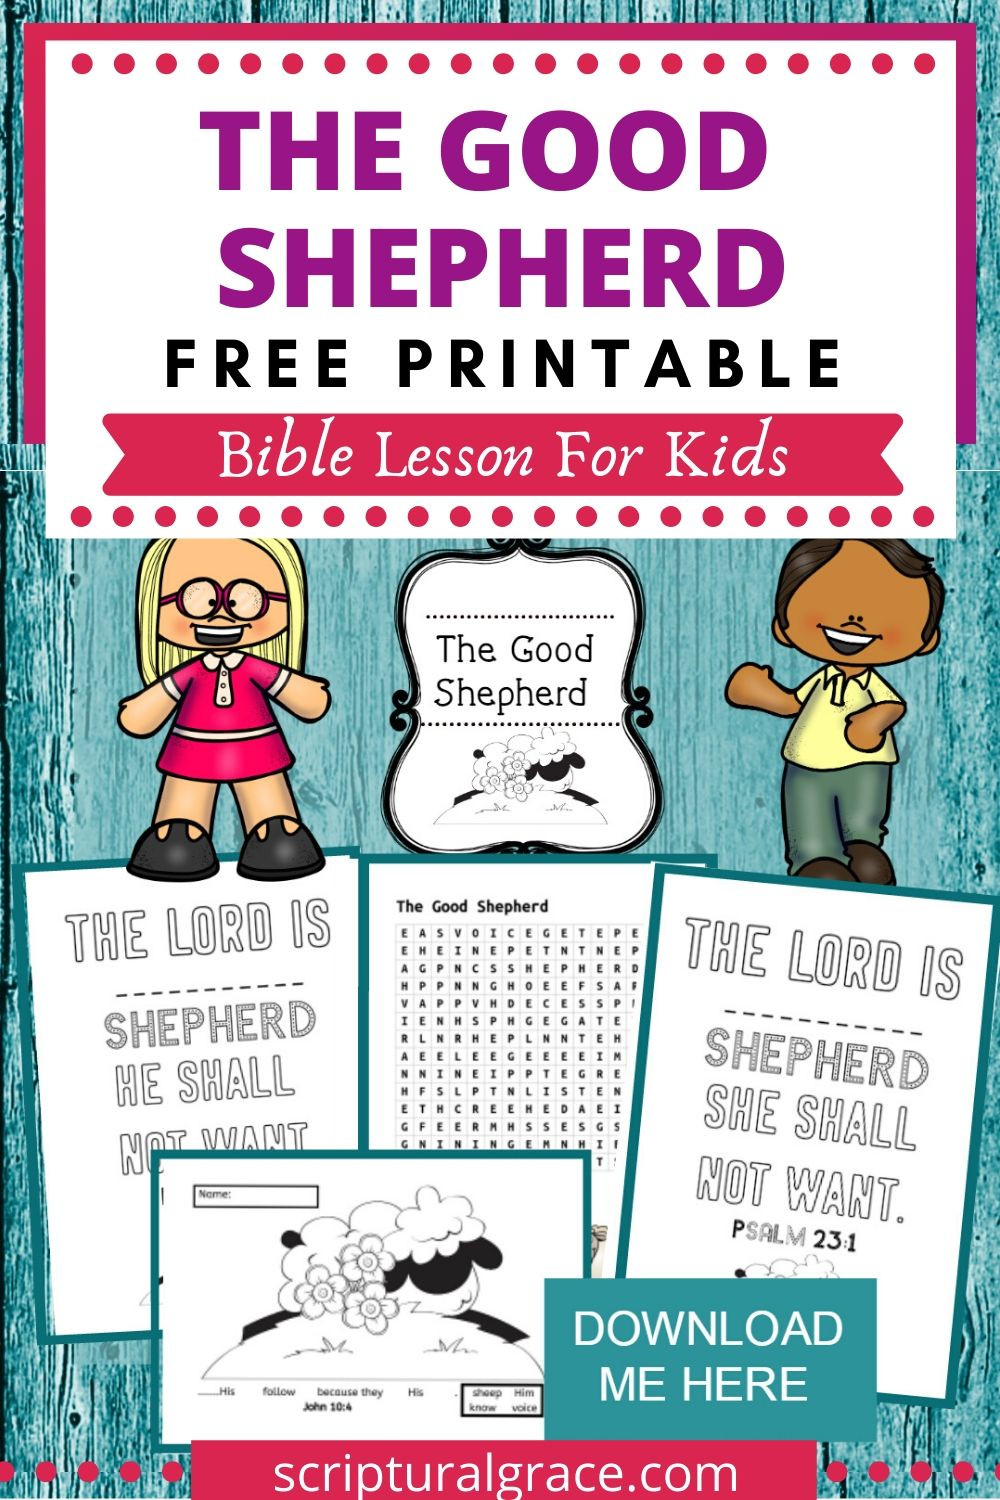 The Good Shepherd Bible Lesson For Kids and free printable